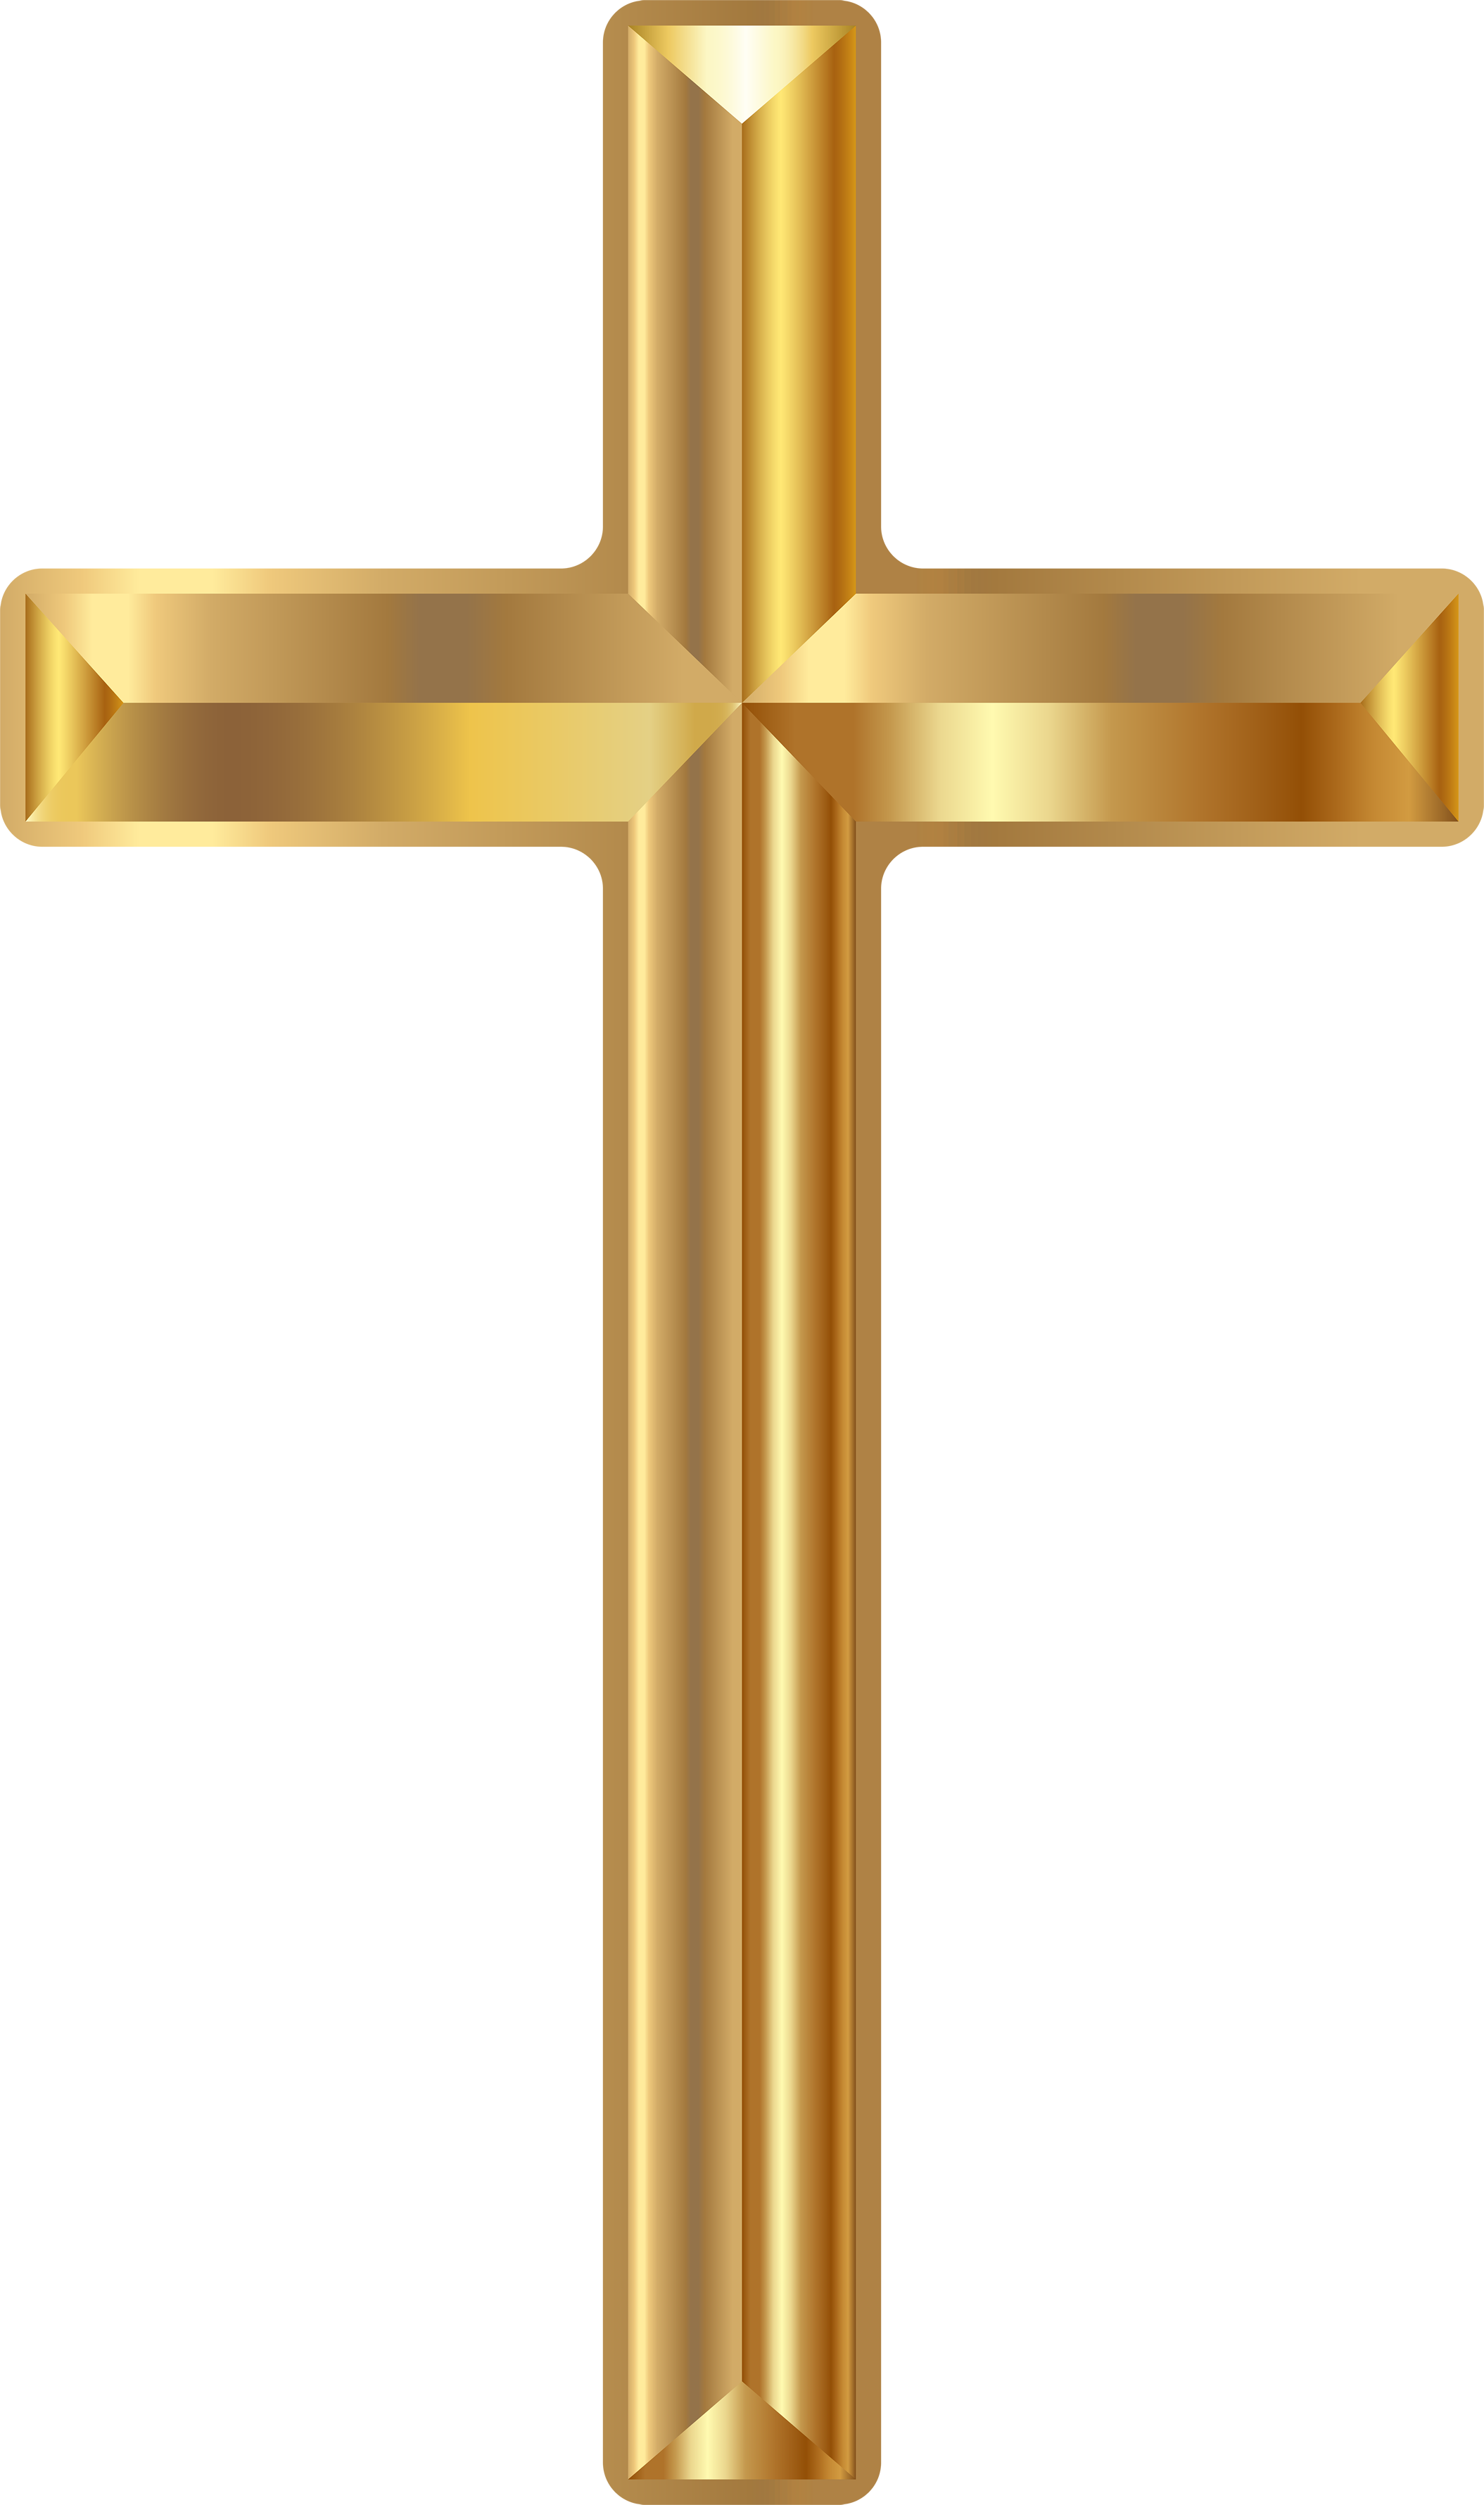 Glowing cross clipart image transparent Christian Cross PNG Images Transparent Free Download | PNGMart.com image transparent